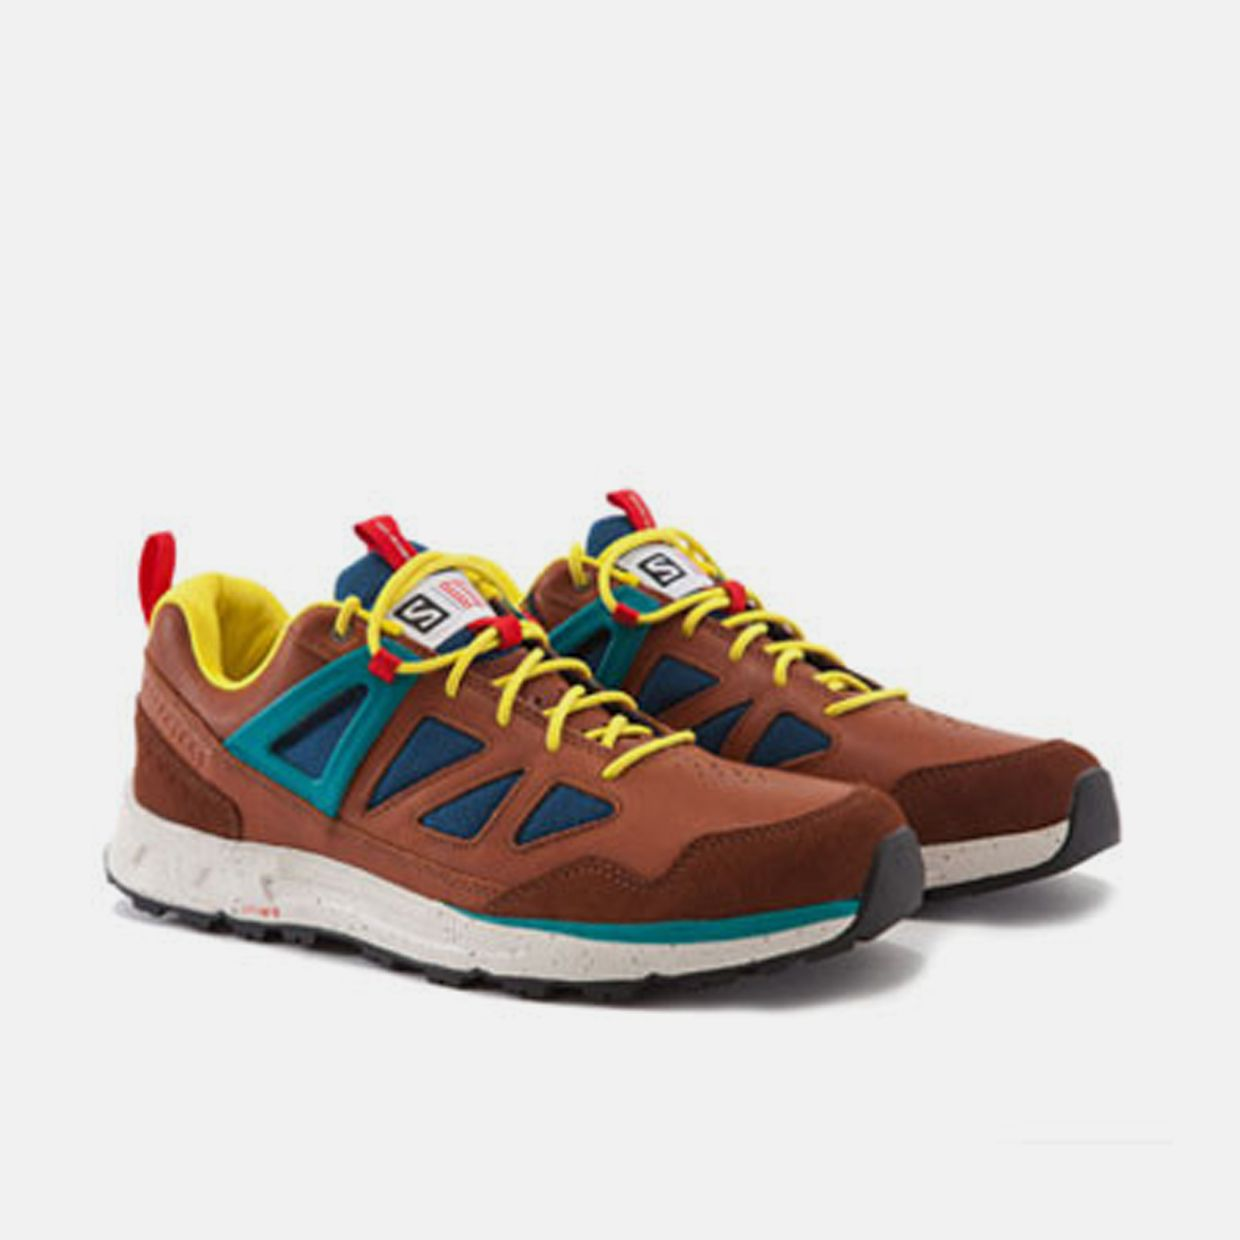 Counter Genuine New balance M770V5 Mens Running Shoes Yellow Black RNE